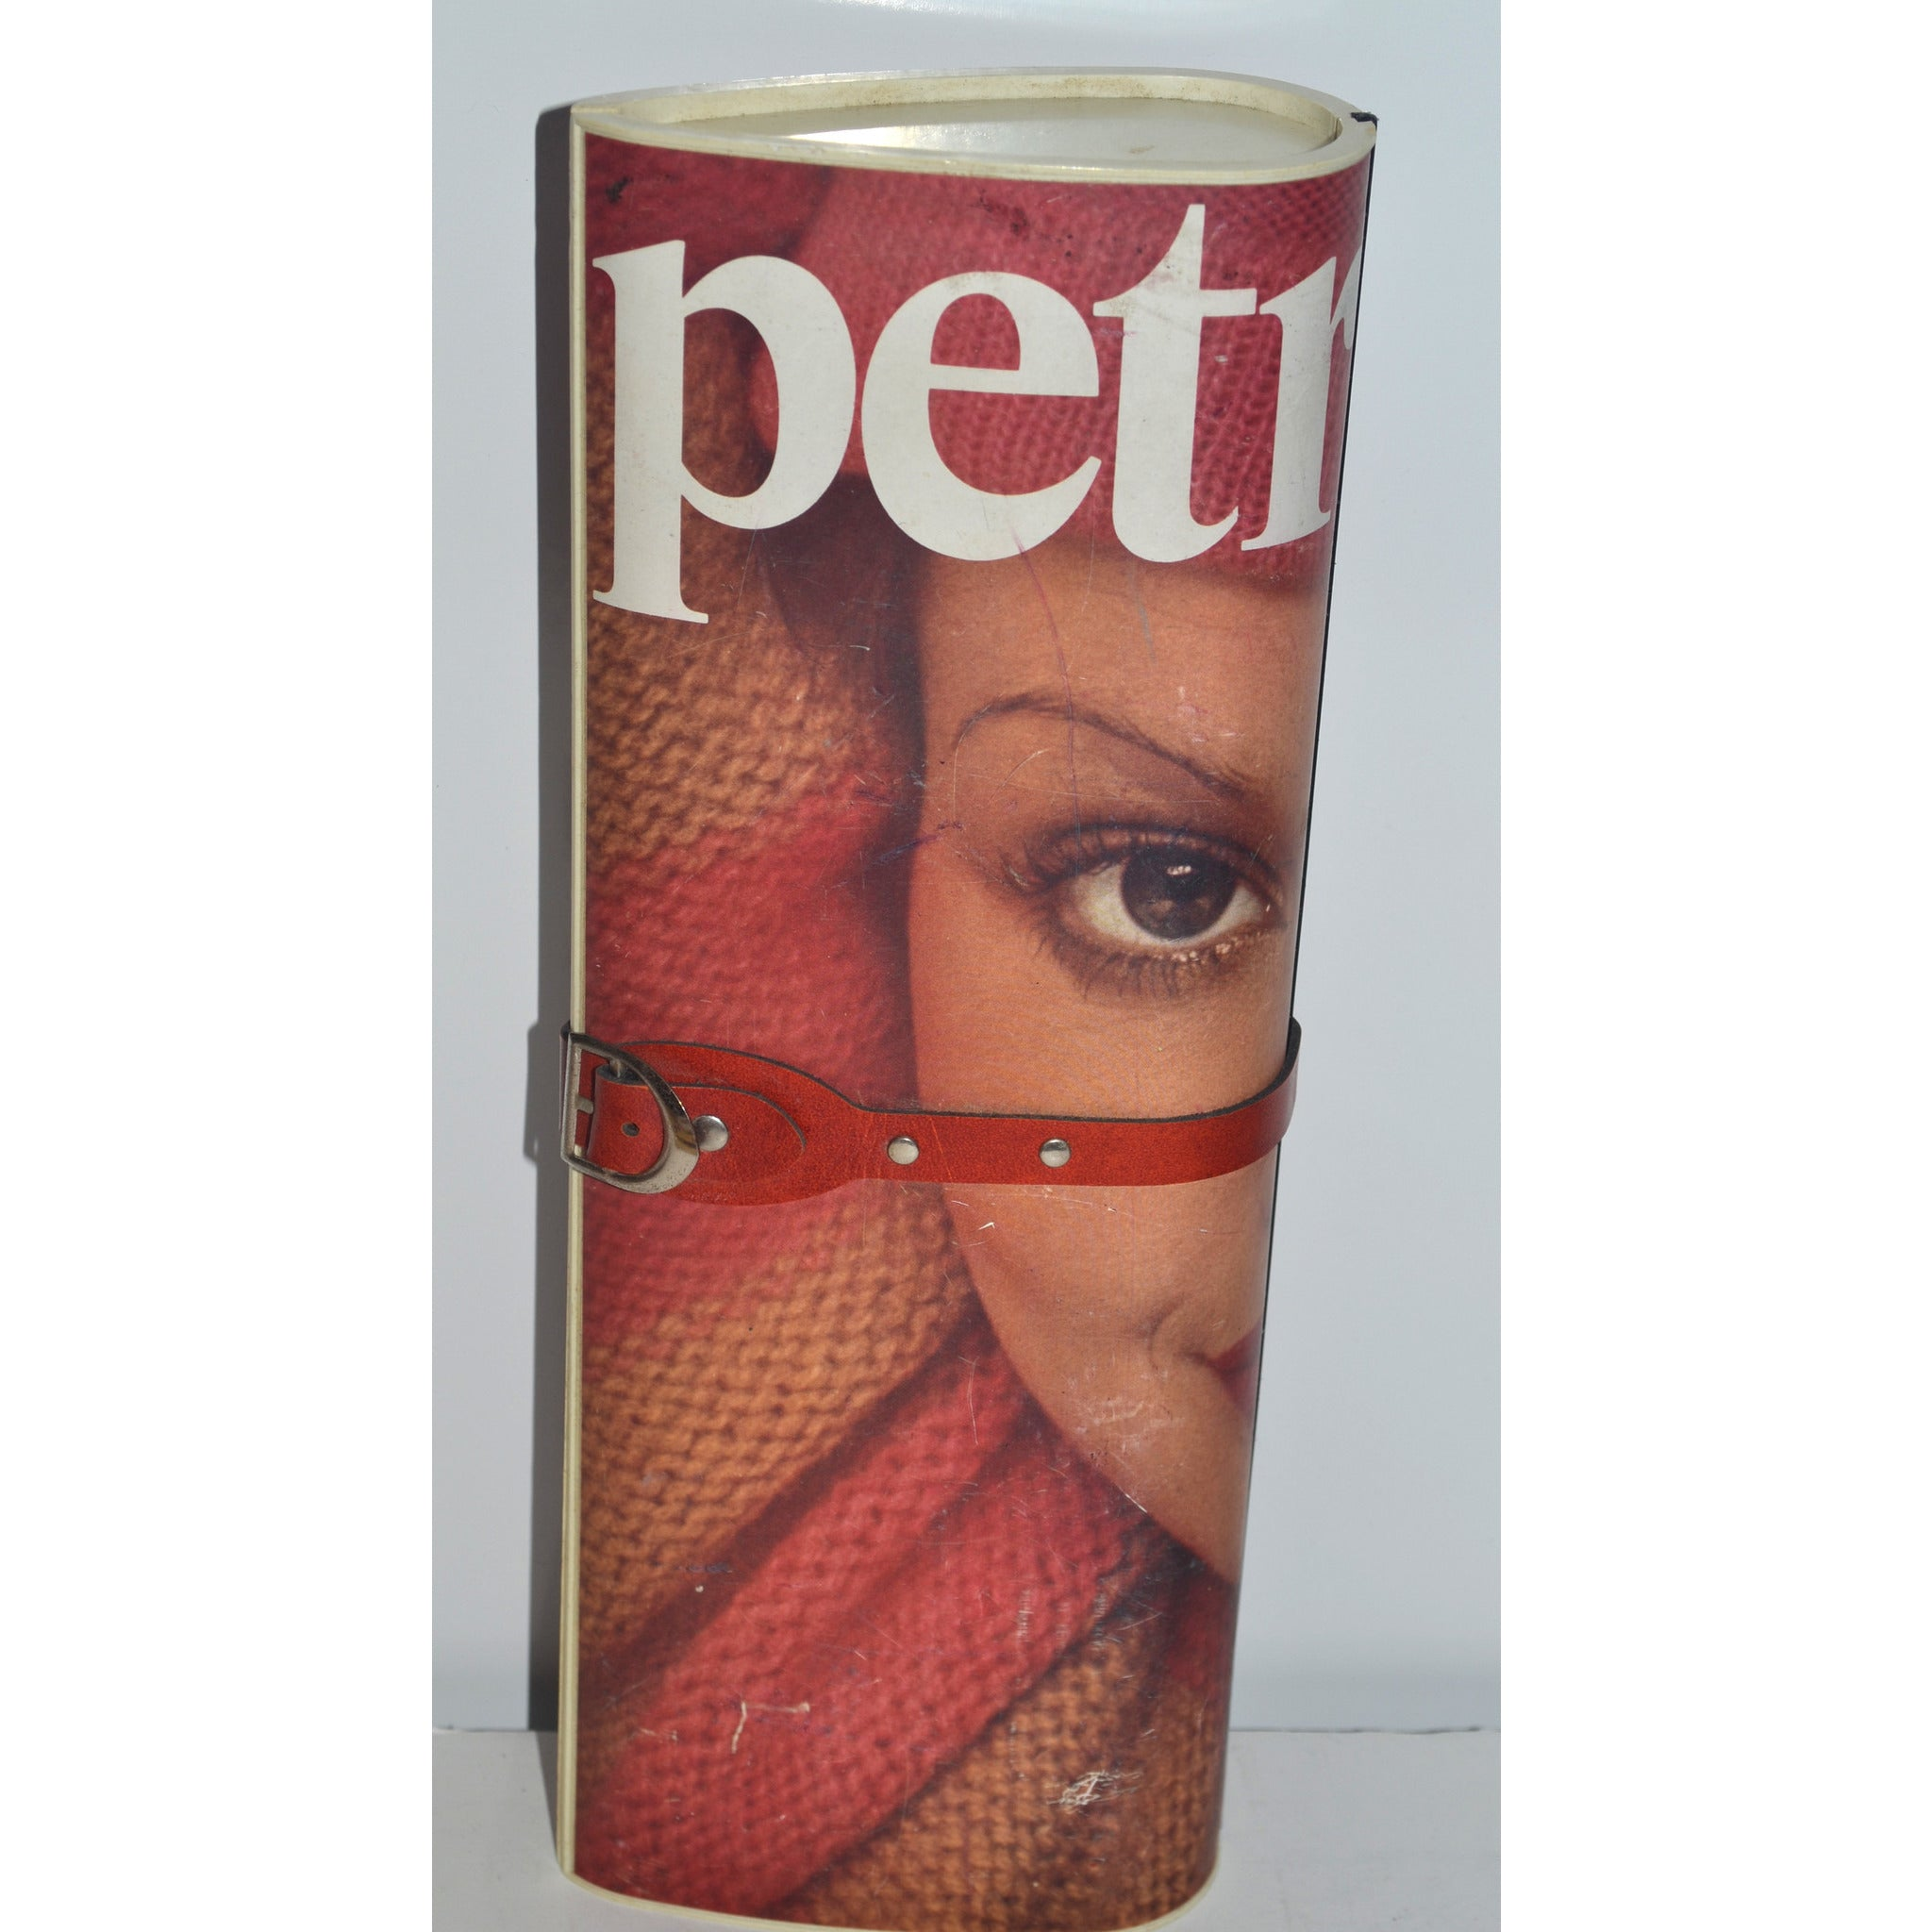 Vintage Petra Magazine Clutch Purse